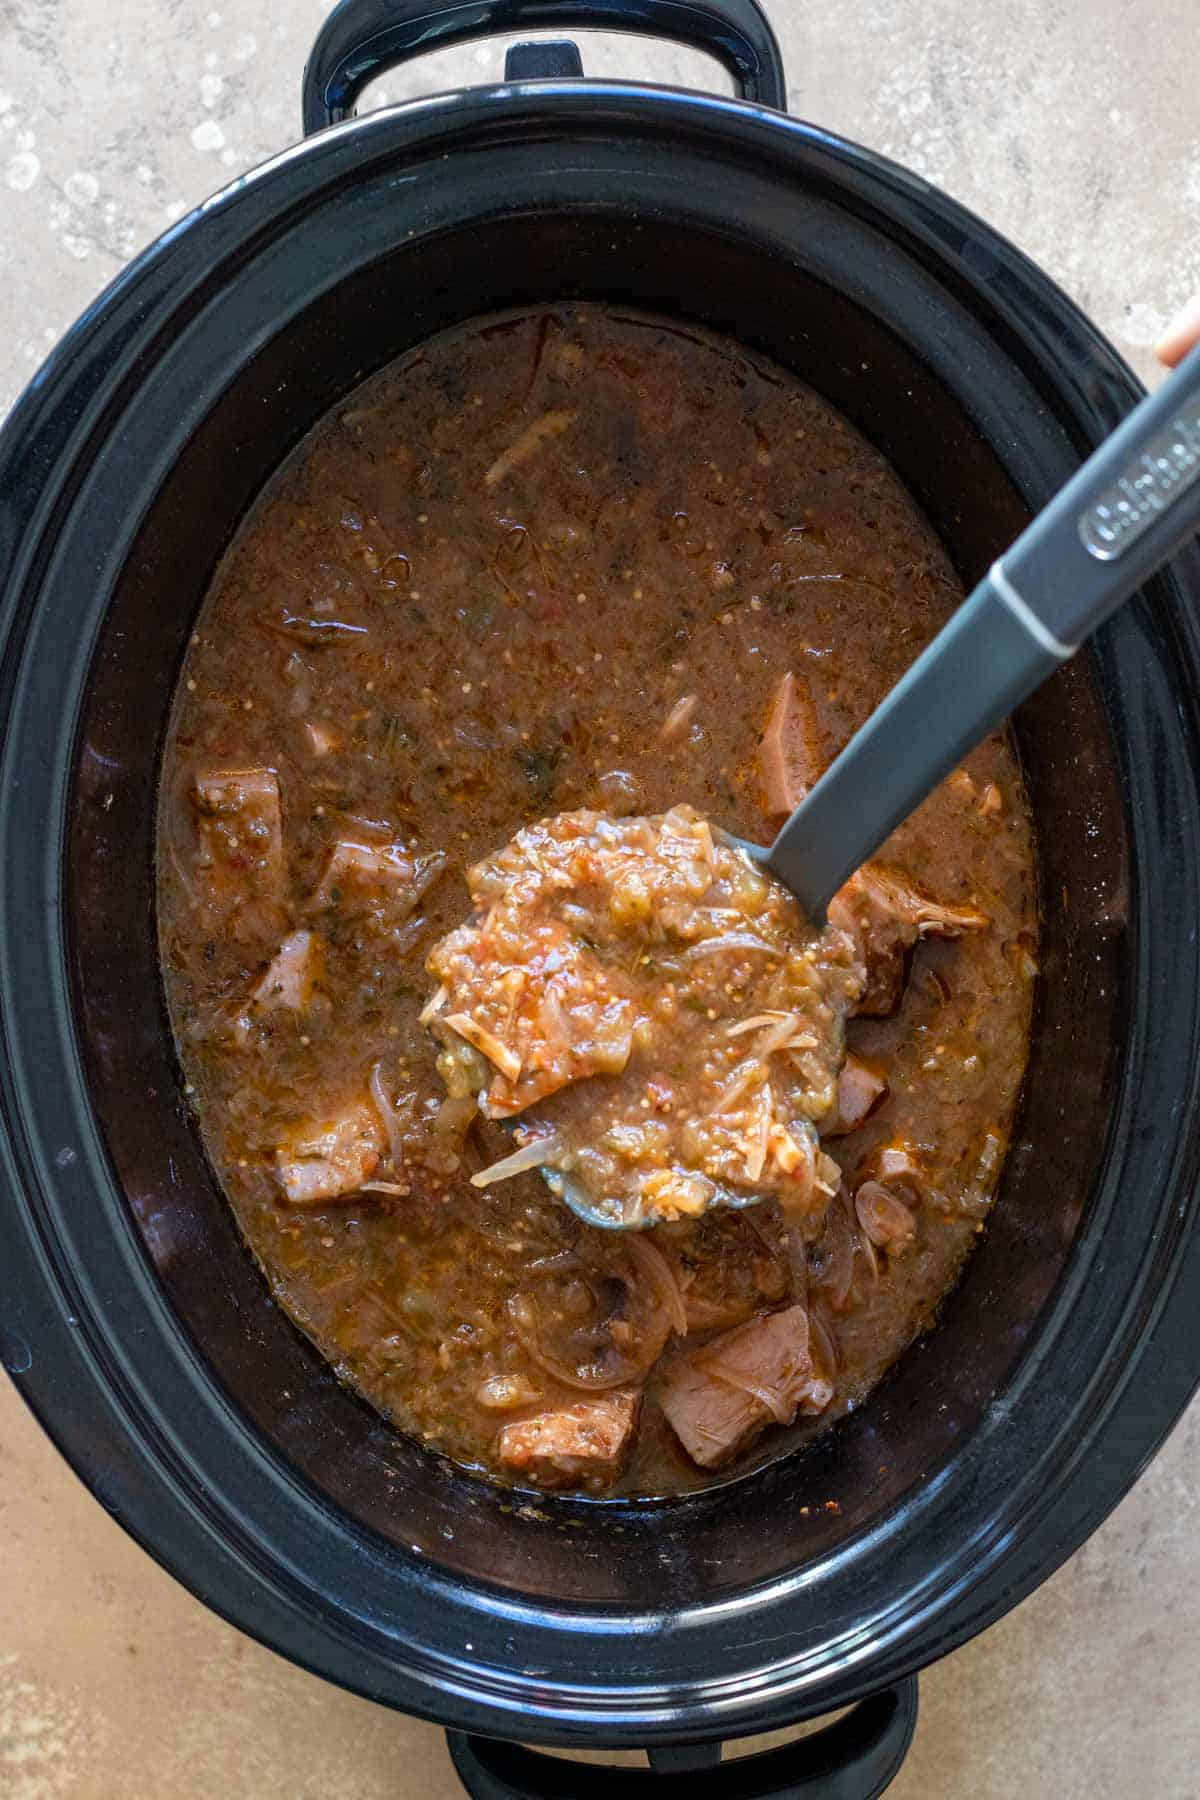 Cooked Stew in slow cooker with scoop on ladle.